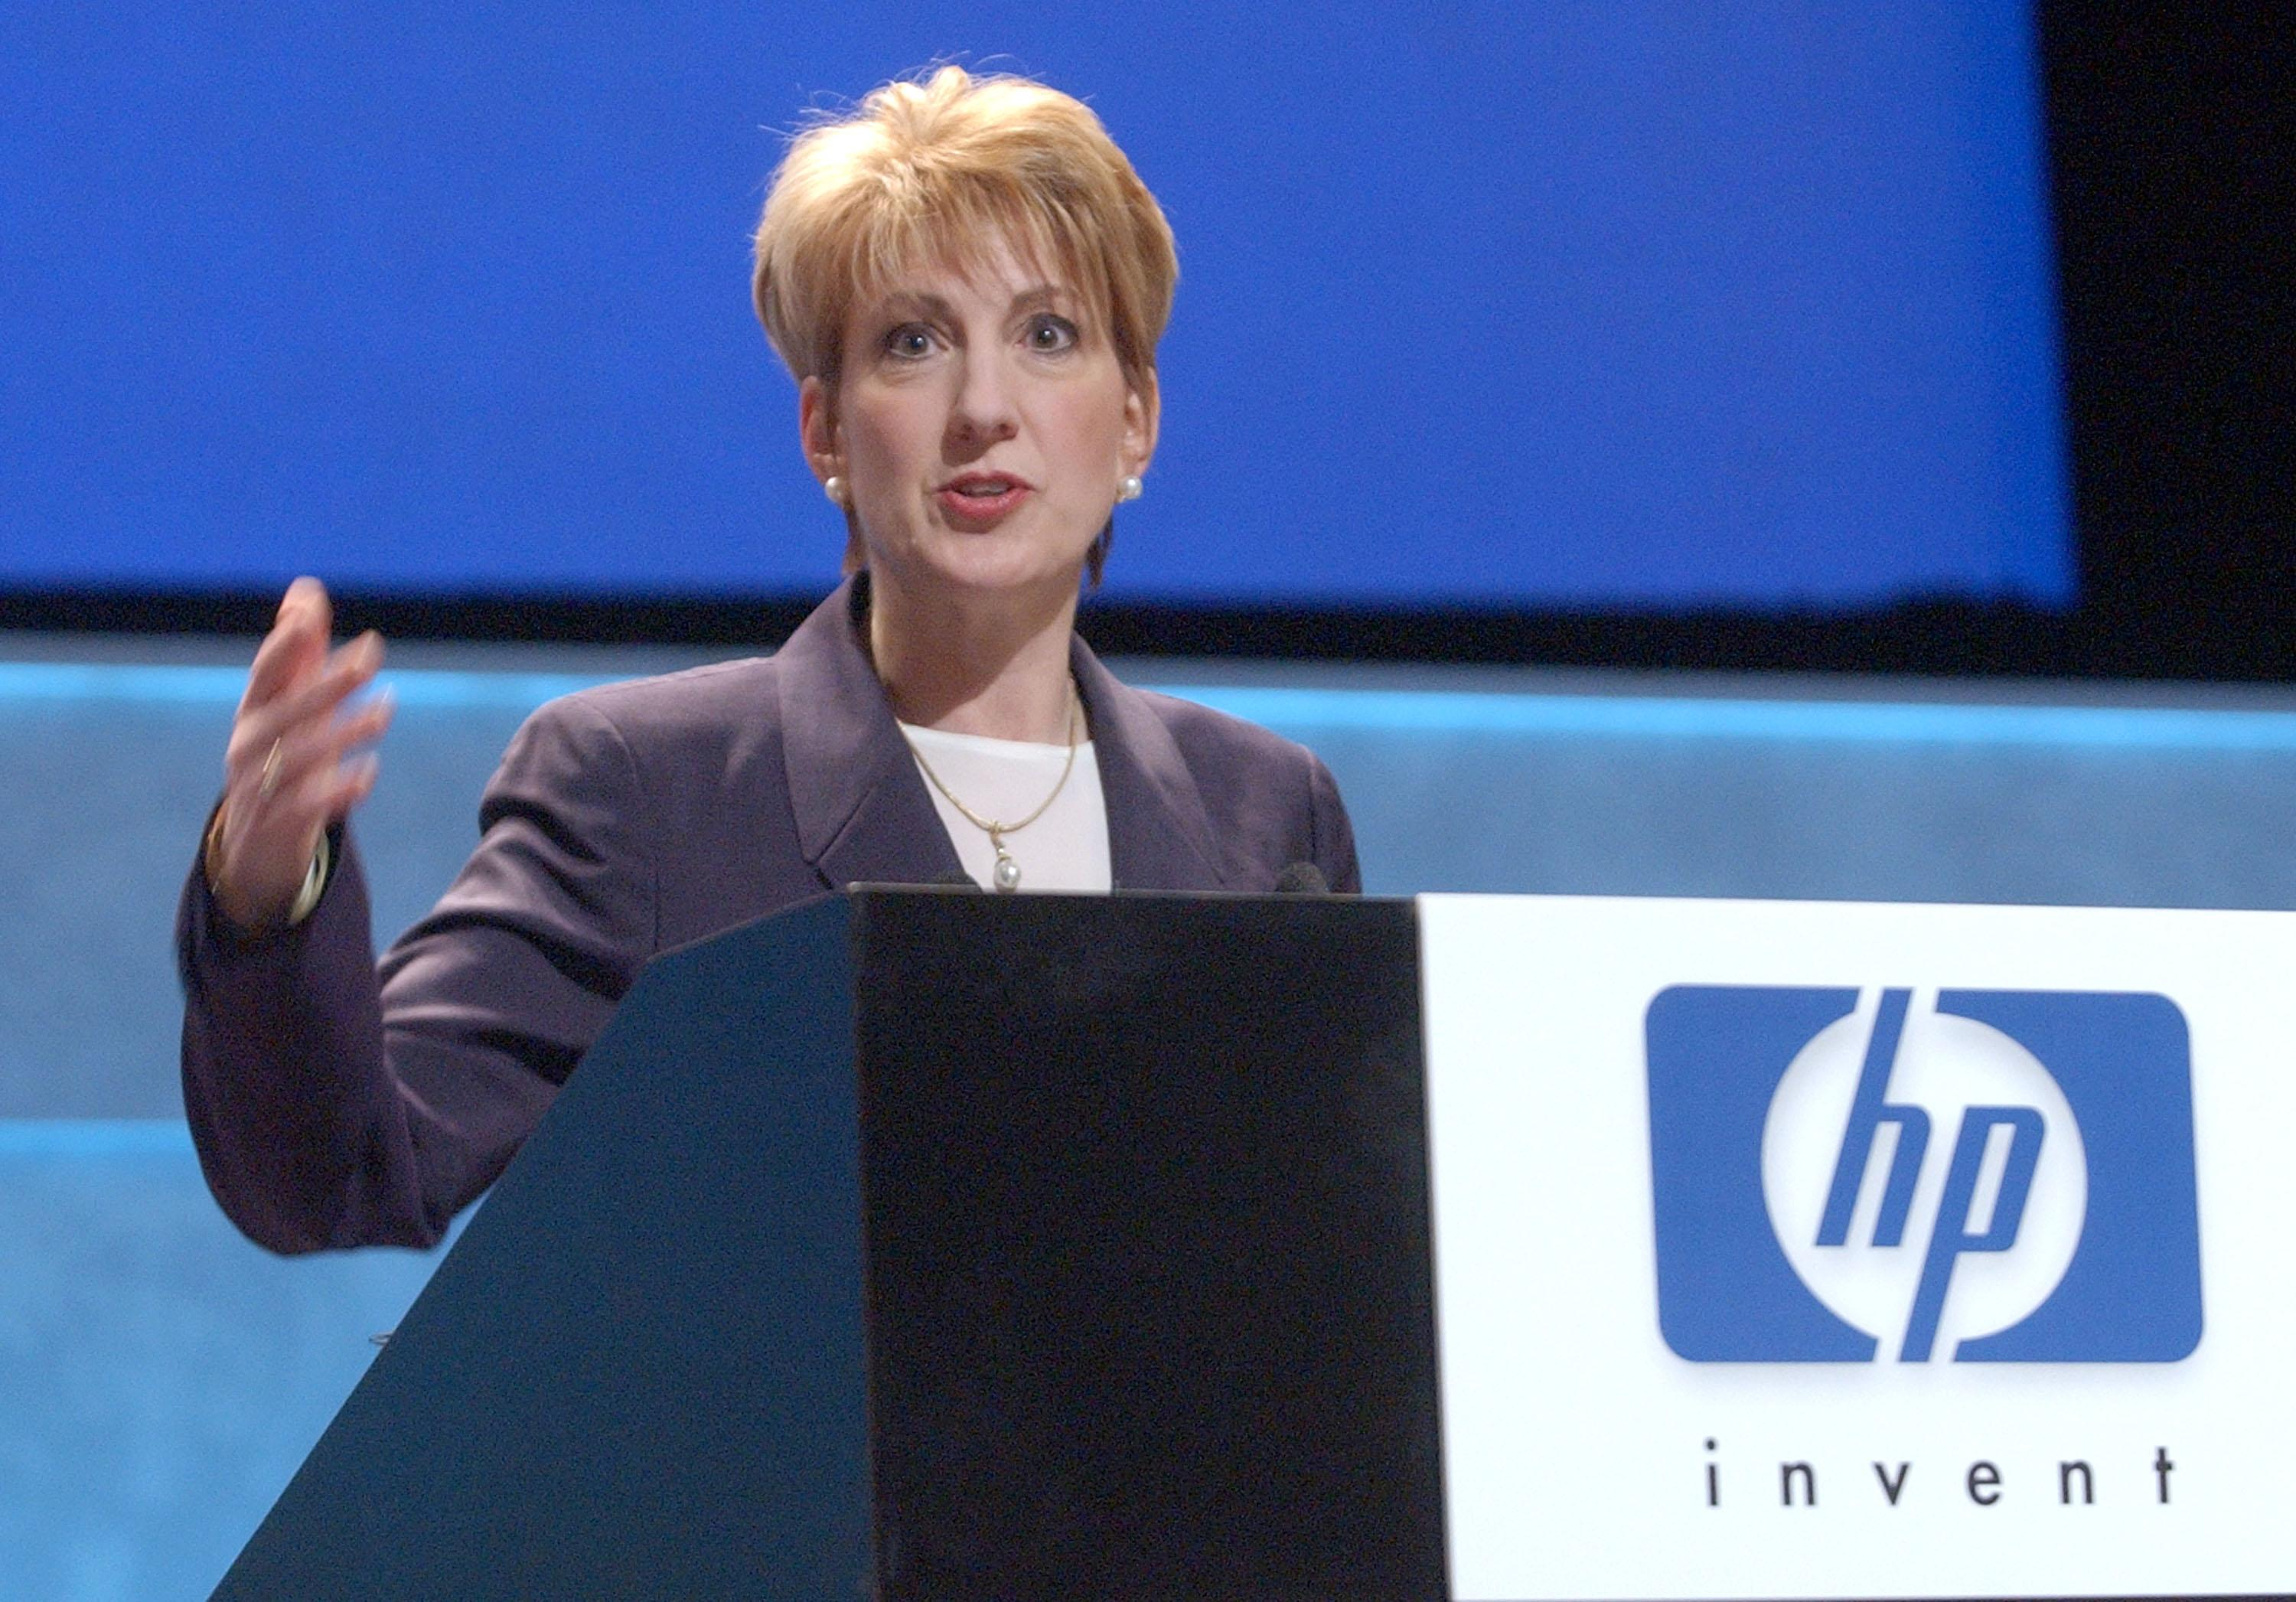 Under Carly Fiorina, HP employees used soy-sauce-dispensing chopsticks to game the system